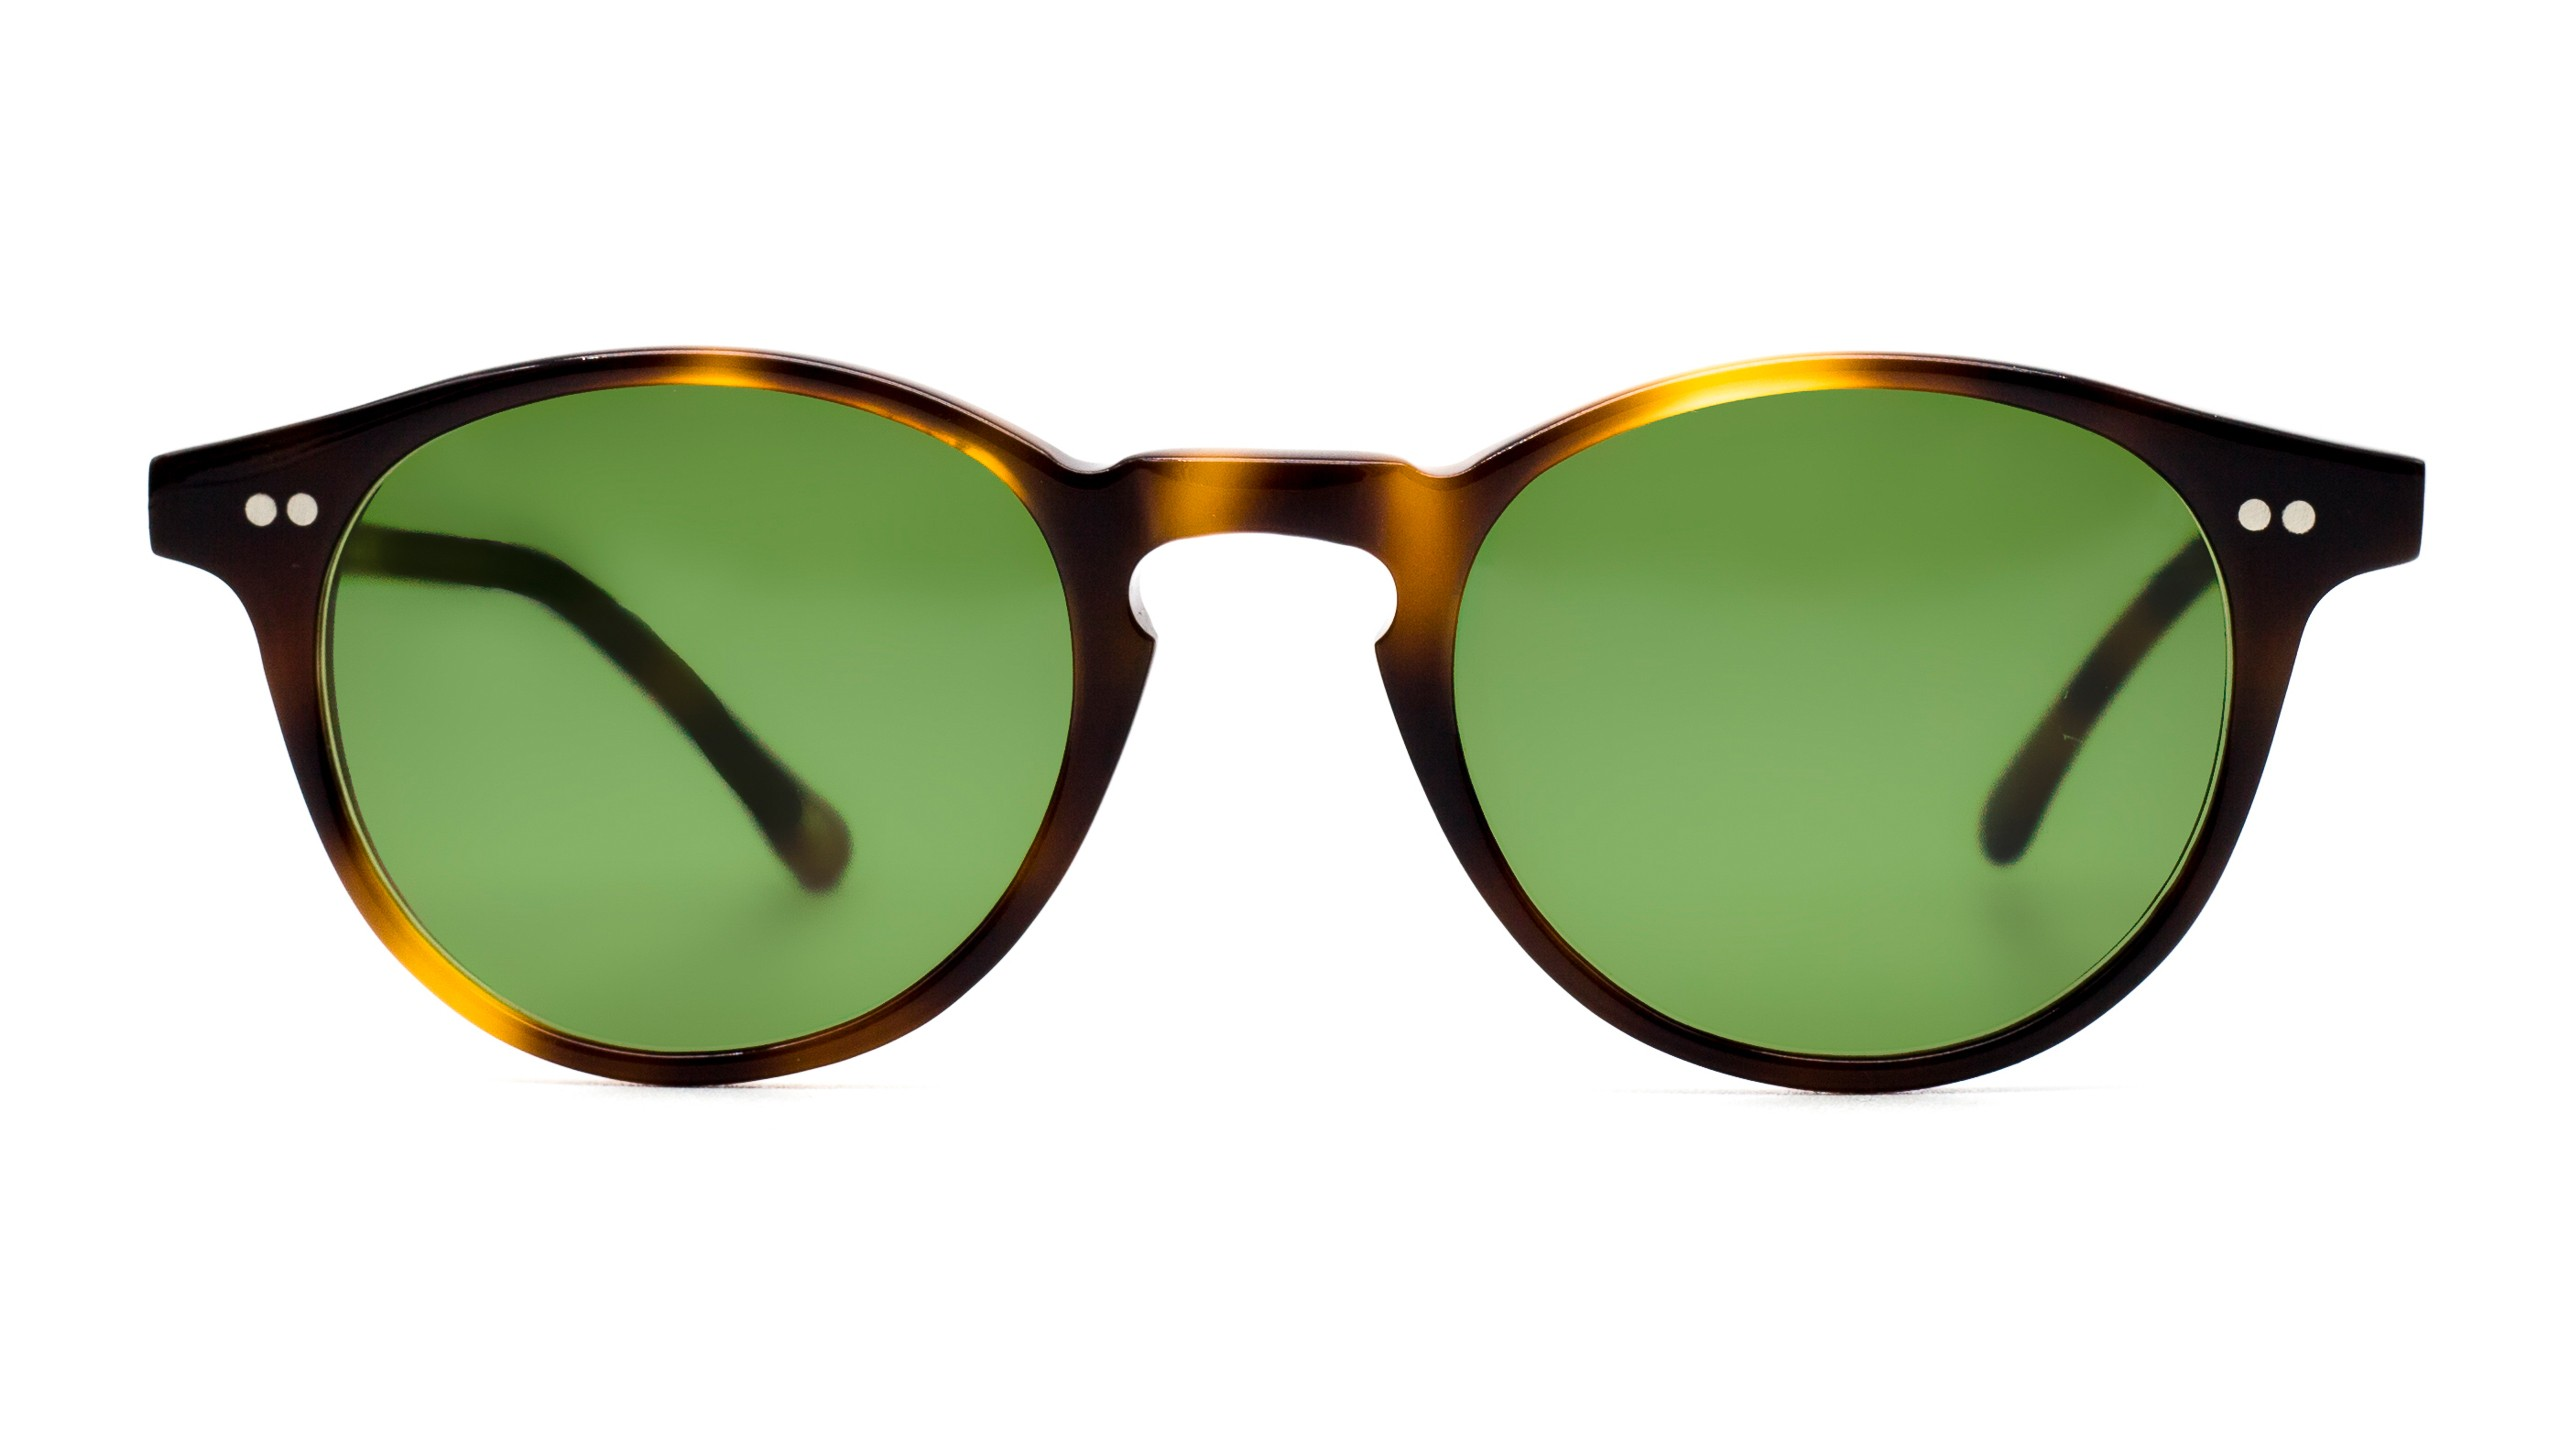 eyeglasses-Nathan-Kaltermann-made-in-Italy-Andrew-C03-Sole1